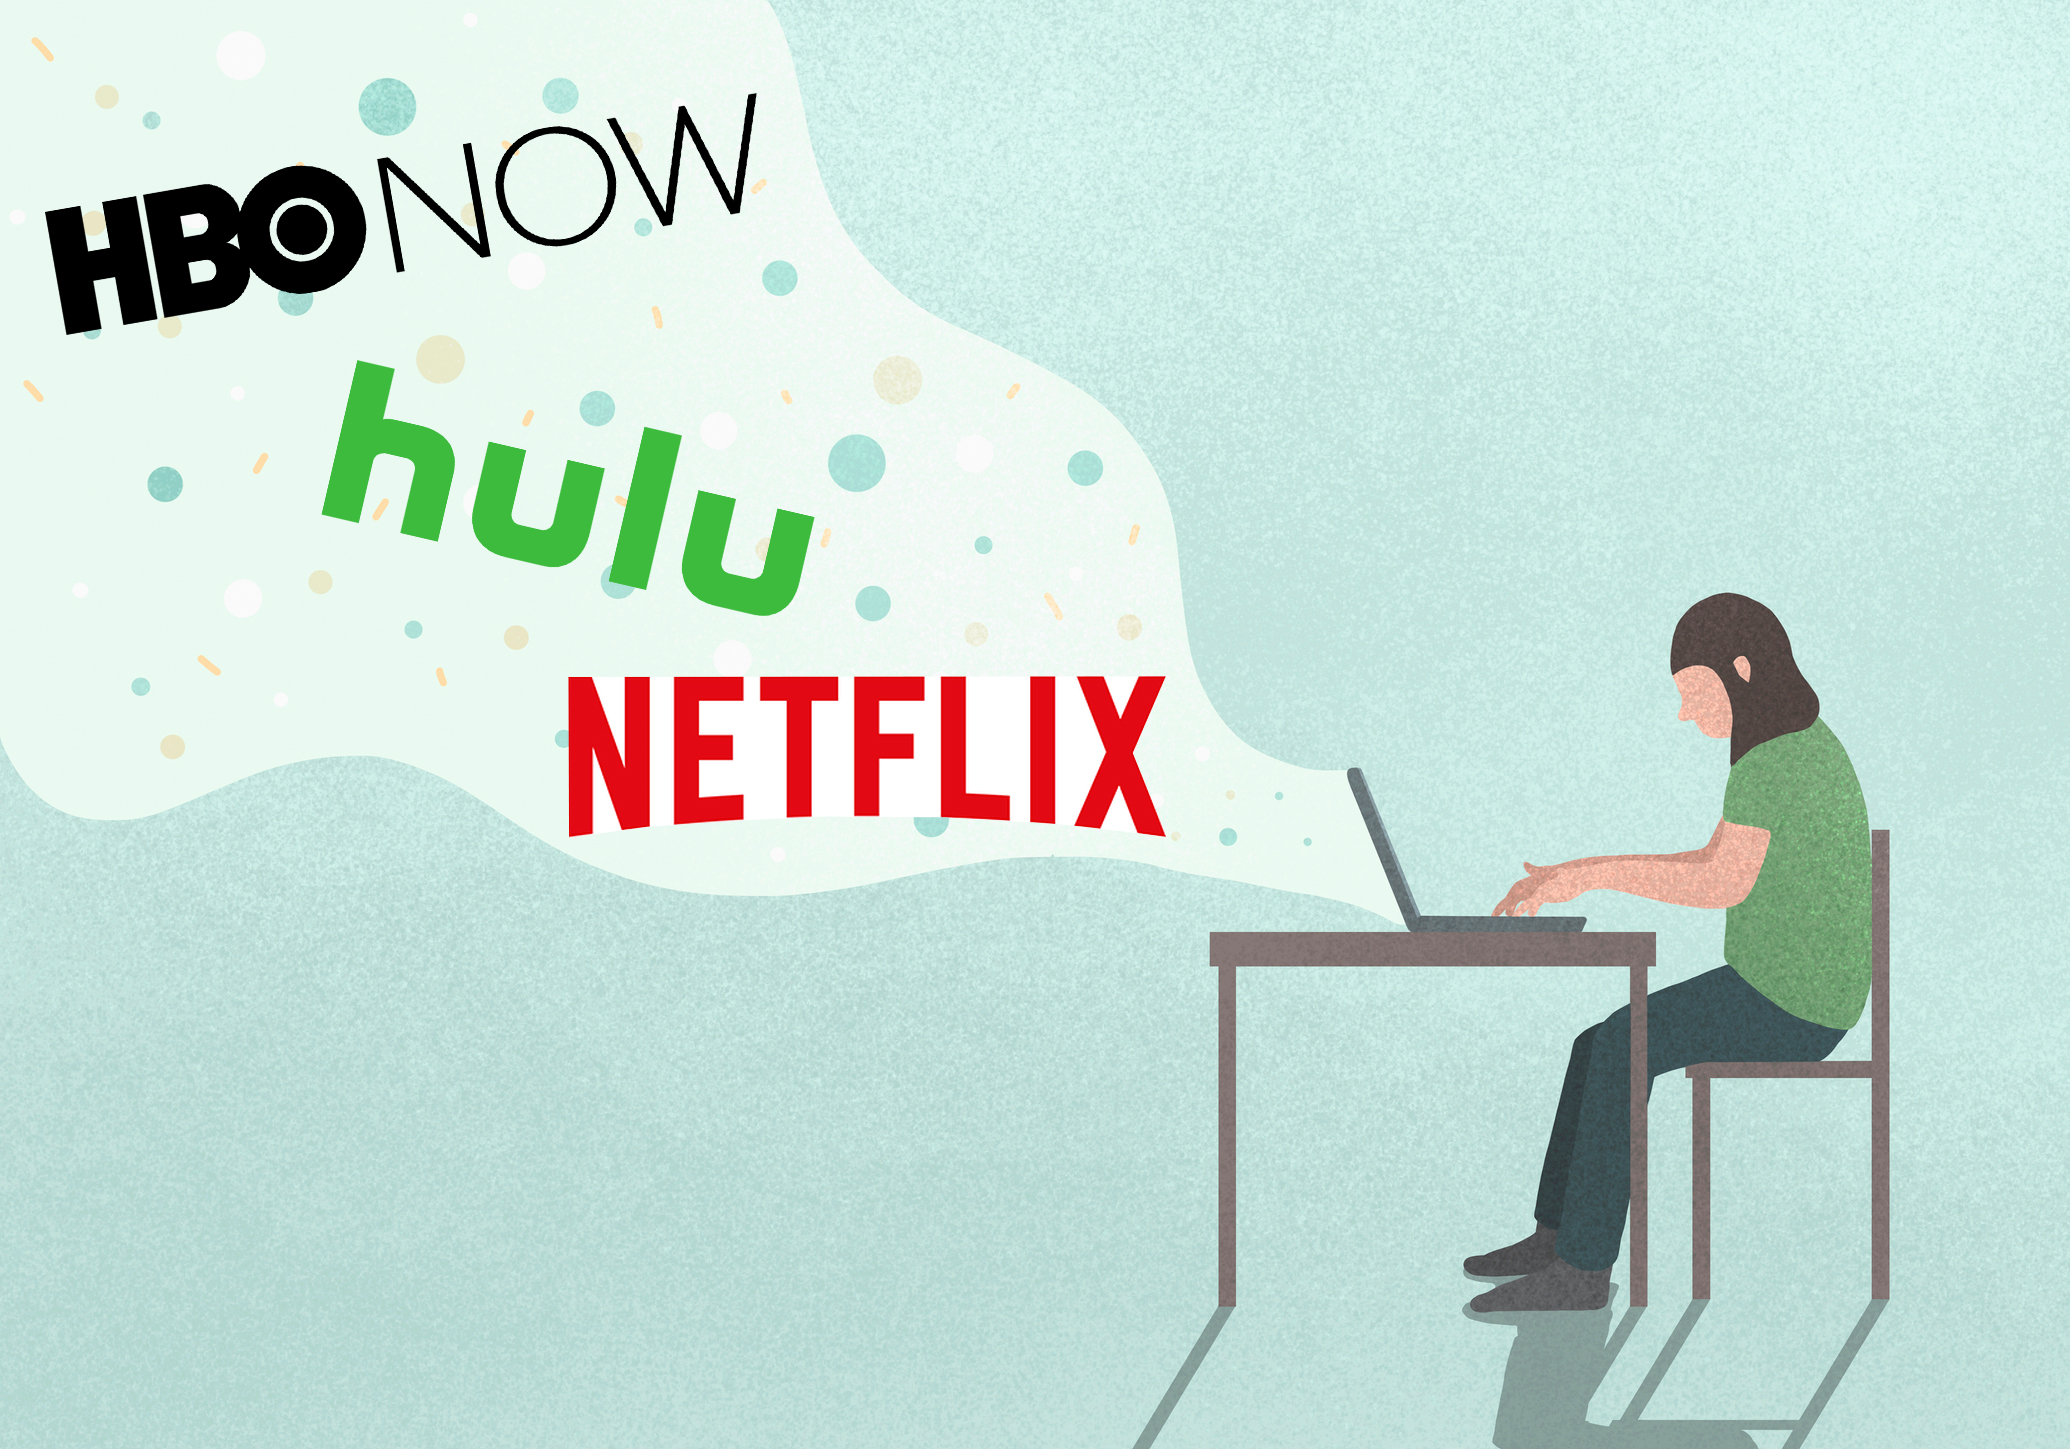 You can get paid to watch Netflix, because dreams really do